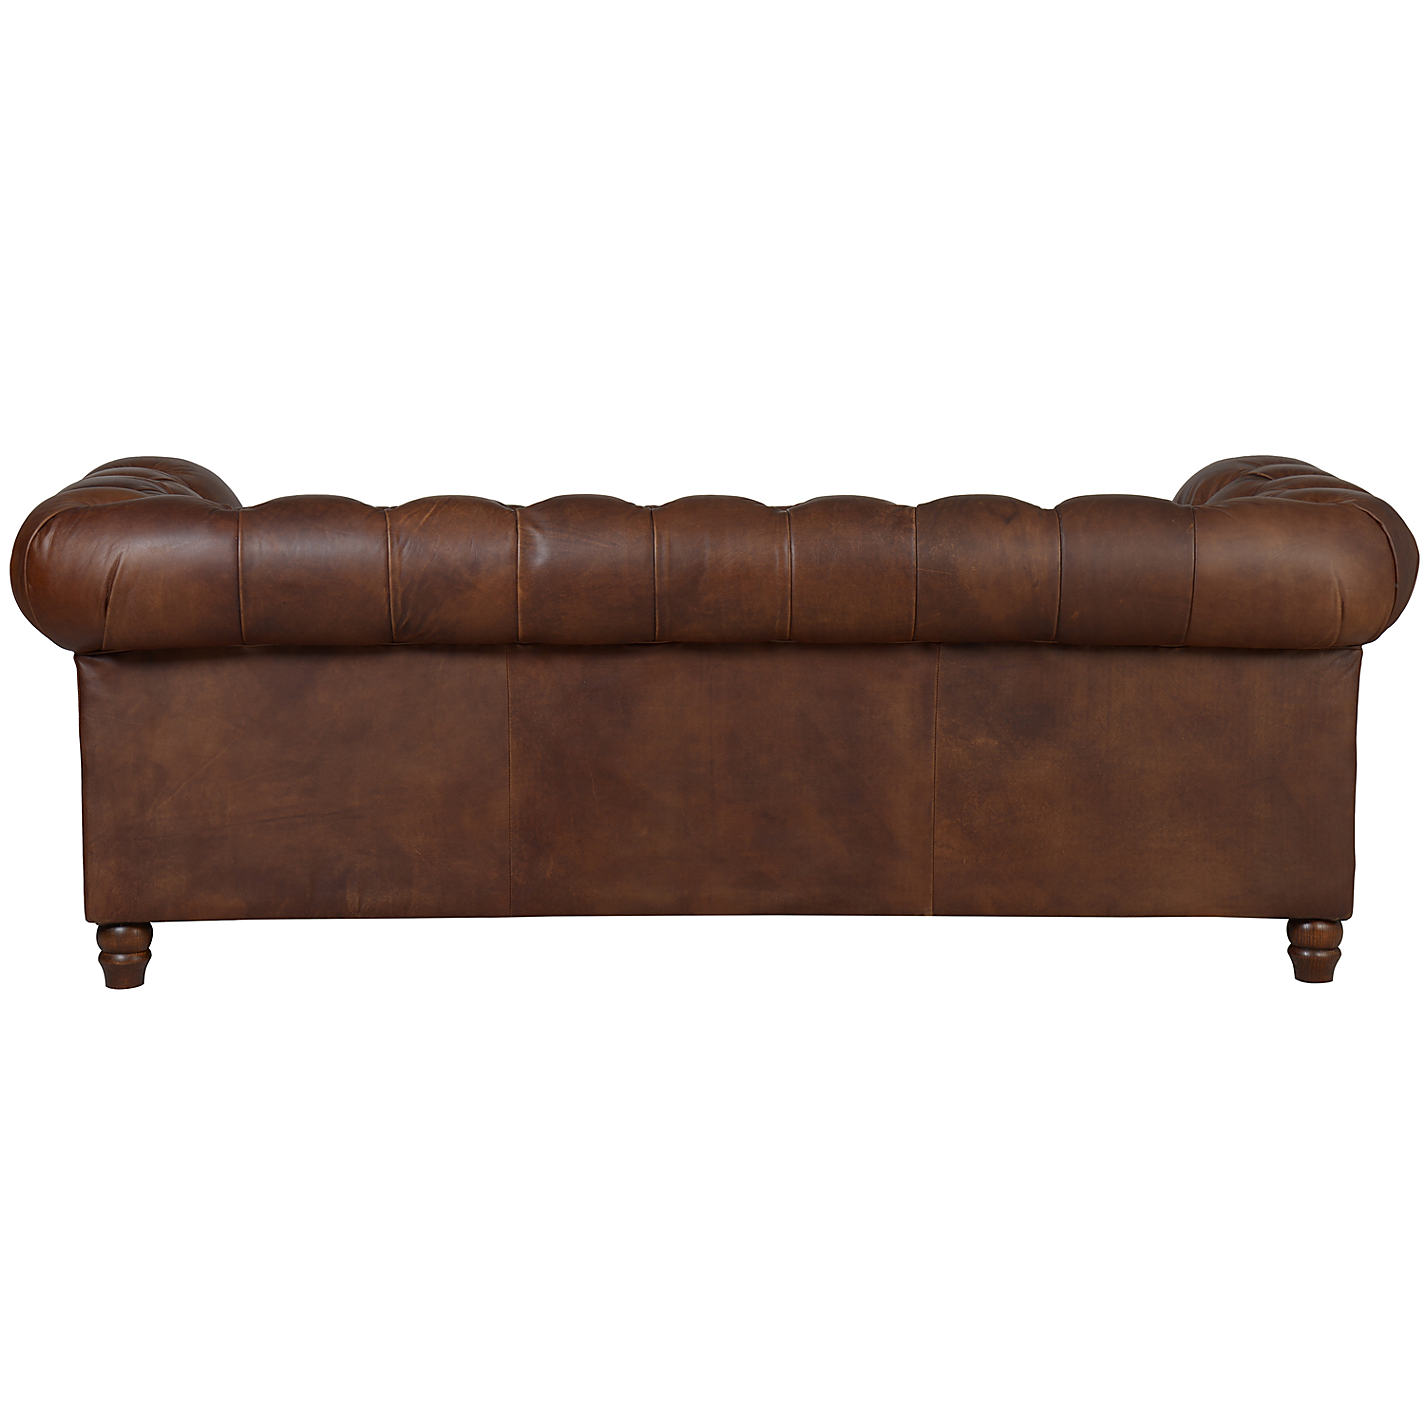 Buy Halo Earle Aniline Leather Chesterfield Medium Sofa Antique